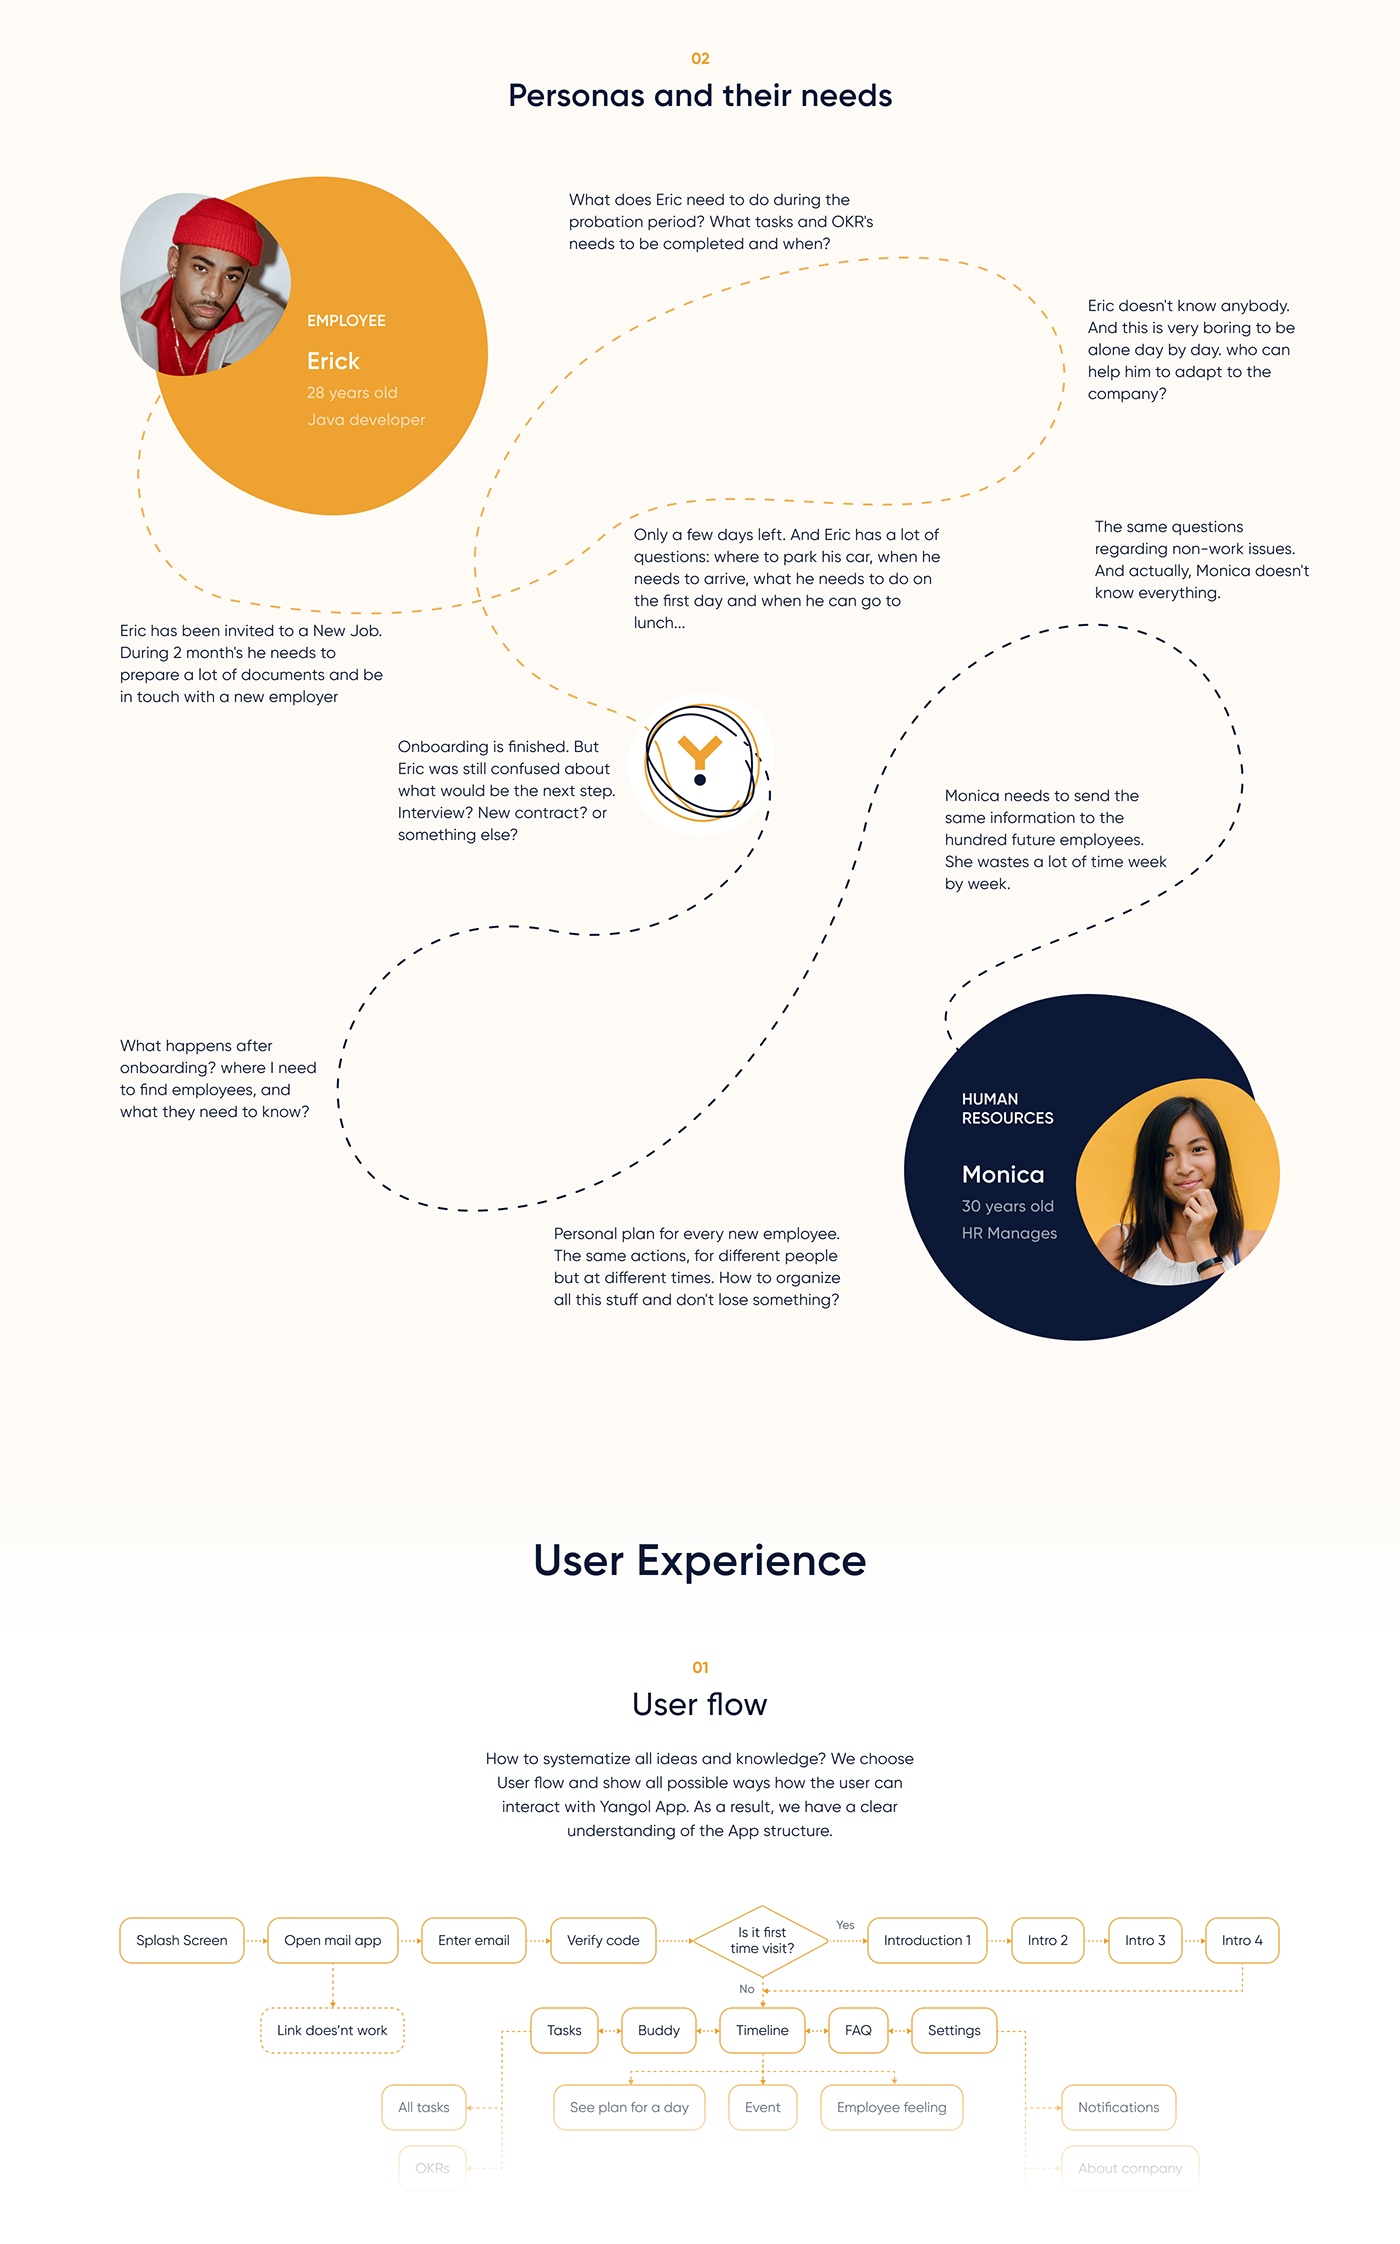 CRM hrm mobile design product design  user experience user interface UX Research ux/ui web app Responsive Design